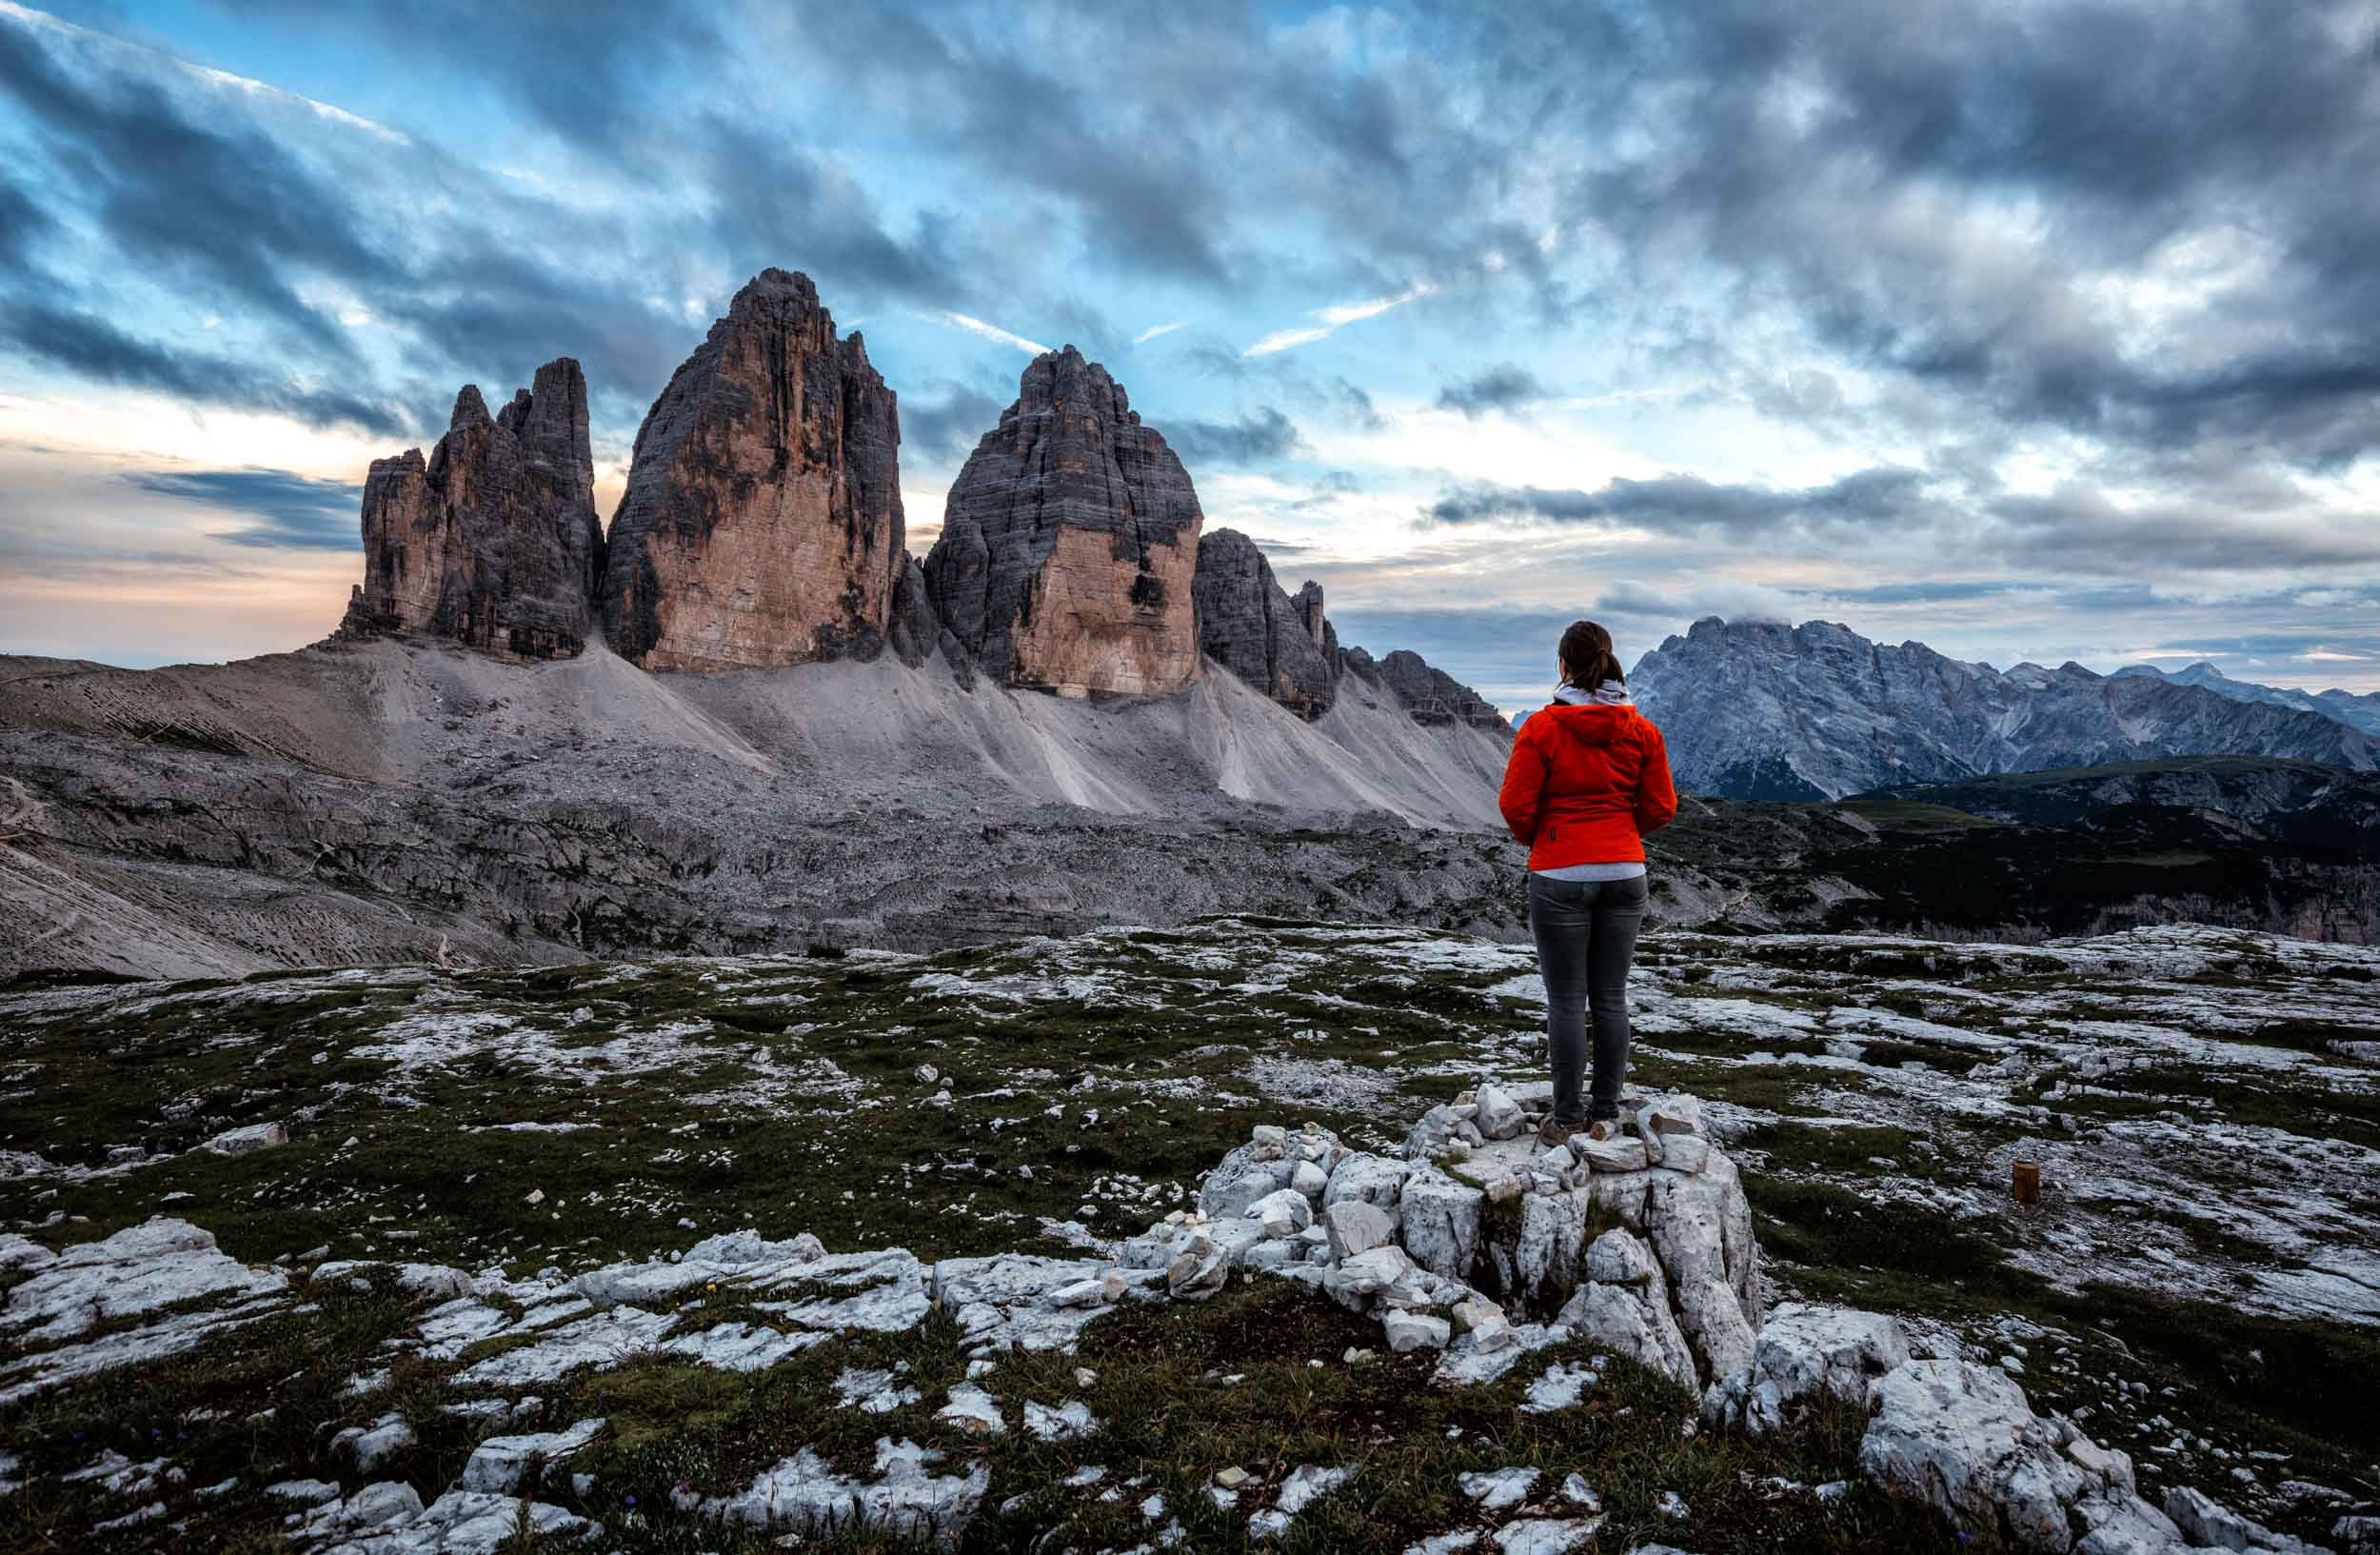 Three Peaks - Dolomites, Italy - Landscape Photography